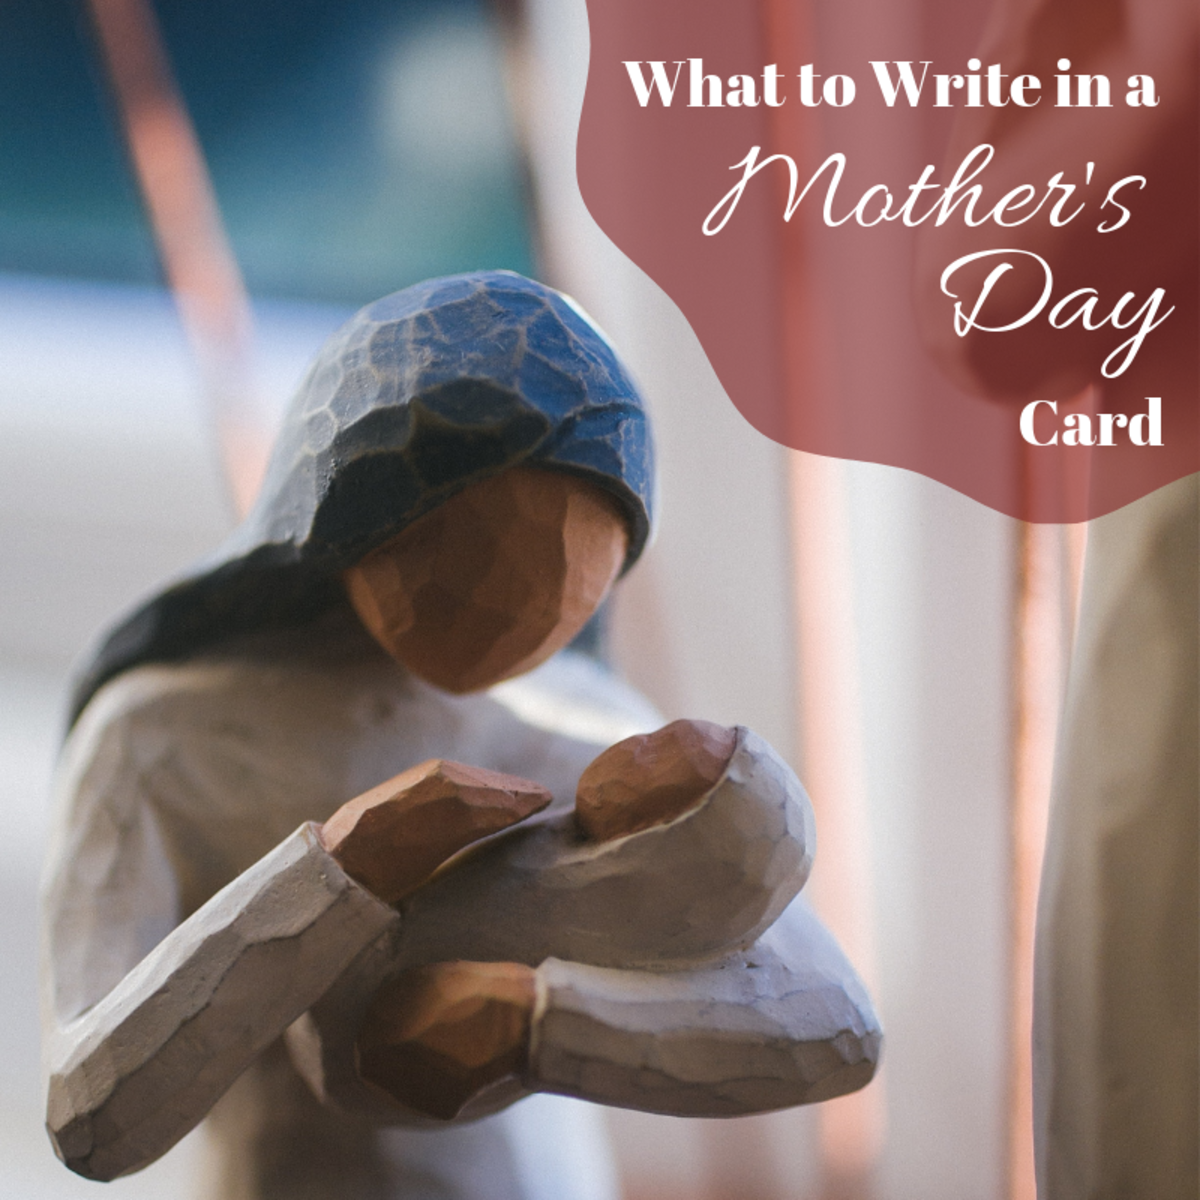 Messages to Write in a Mother's Day Card